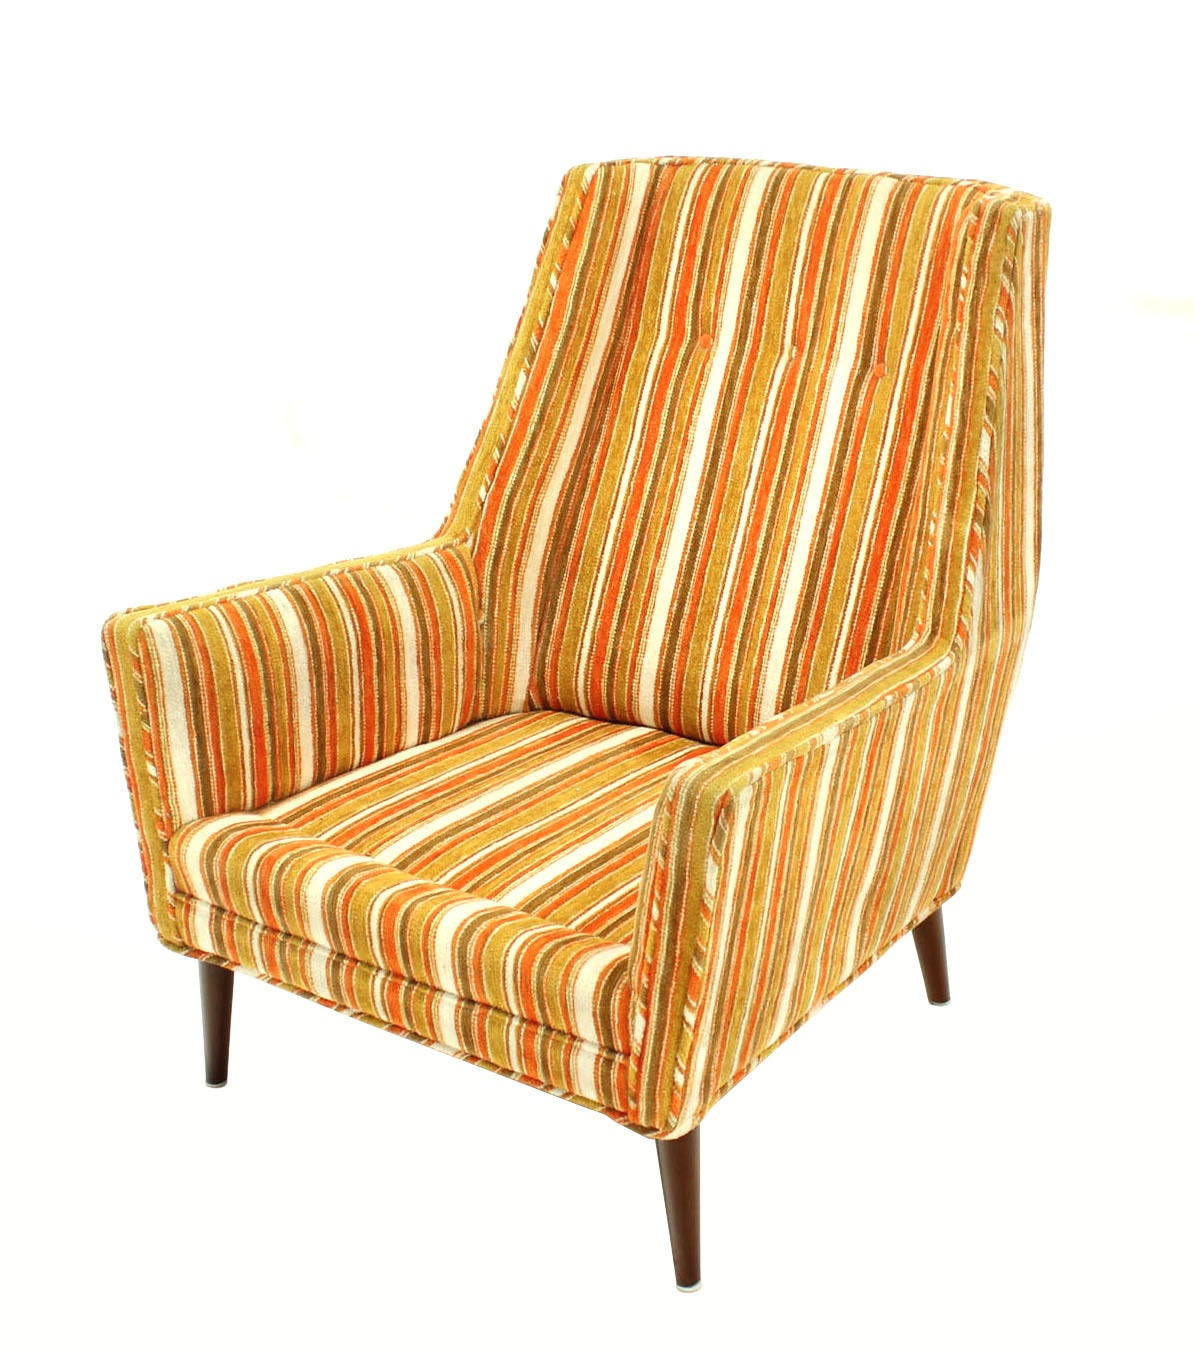 Mid Century Modern Lounge Chairs Mid Century Modern Lounge Chair For Sale At 1stdibs